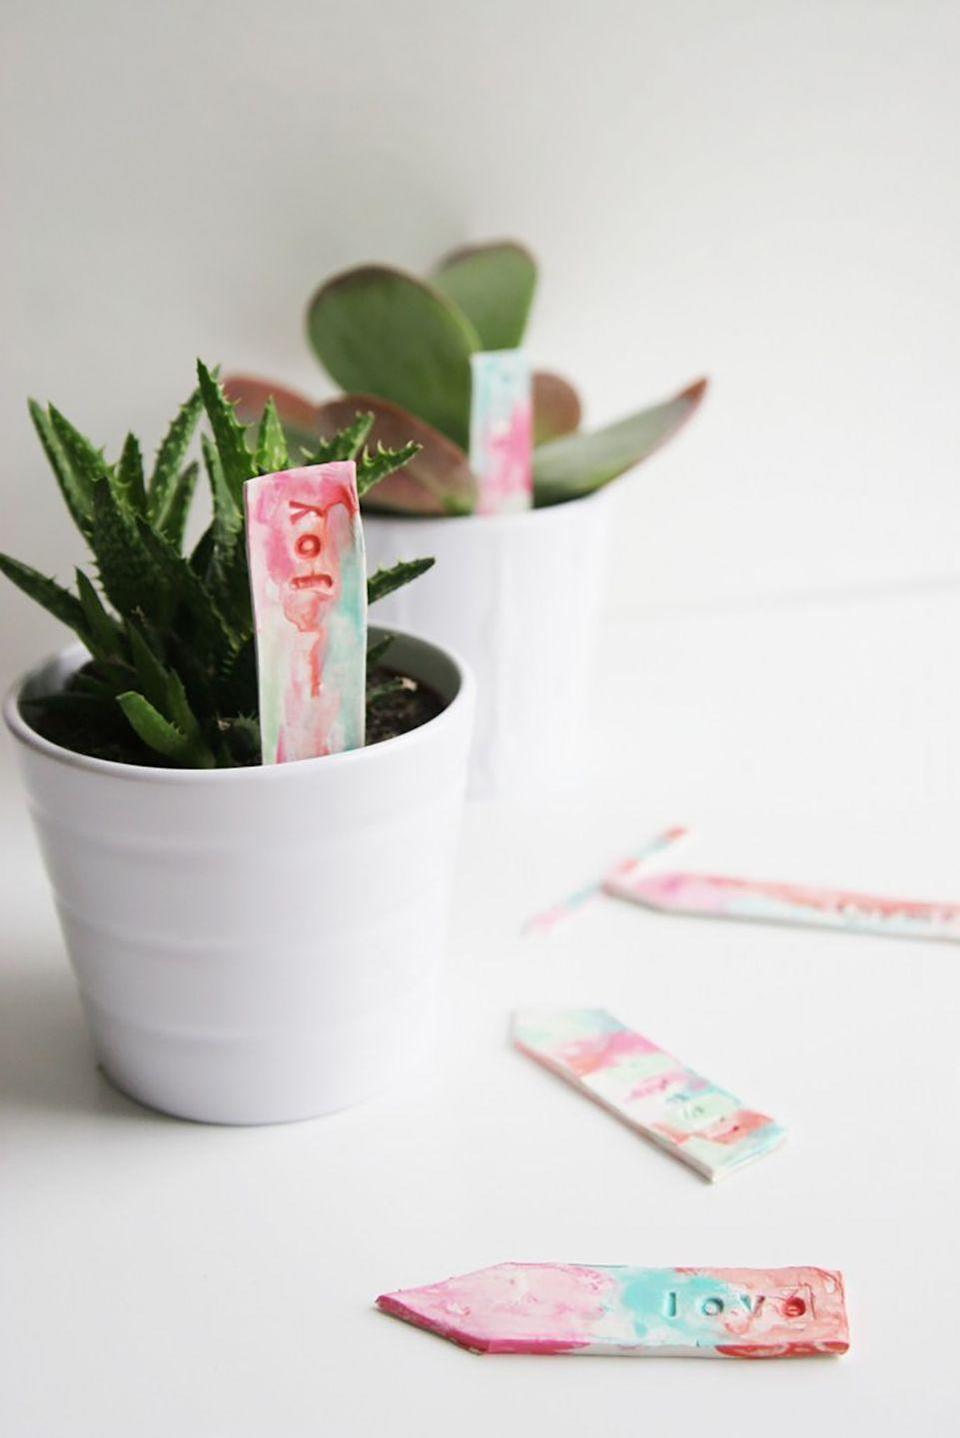 "<p>Acrylic paint, alphabet stamps, and oven-bake polymer clay are all you need to make these pretty plant markers with the kids.</p><p><strong>Get the tutorial at <a href=""http://www.homemadeginger.com/2016/03/watercolor-plant-markers.html"" rel=""nofollow noopener"" target=""_blank"" data-ylk=""slk:Homemade Ginger"" class=""link rapid-noclick-resp"">Homemade Ginger</a>. </strong></p>"